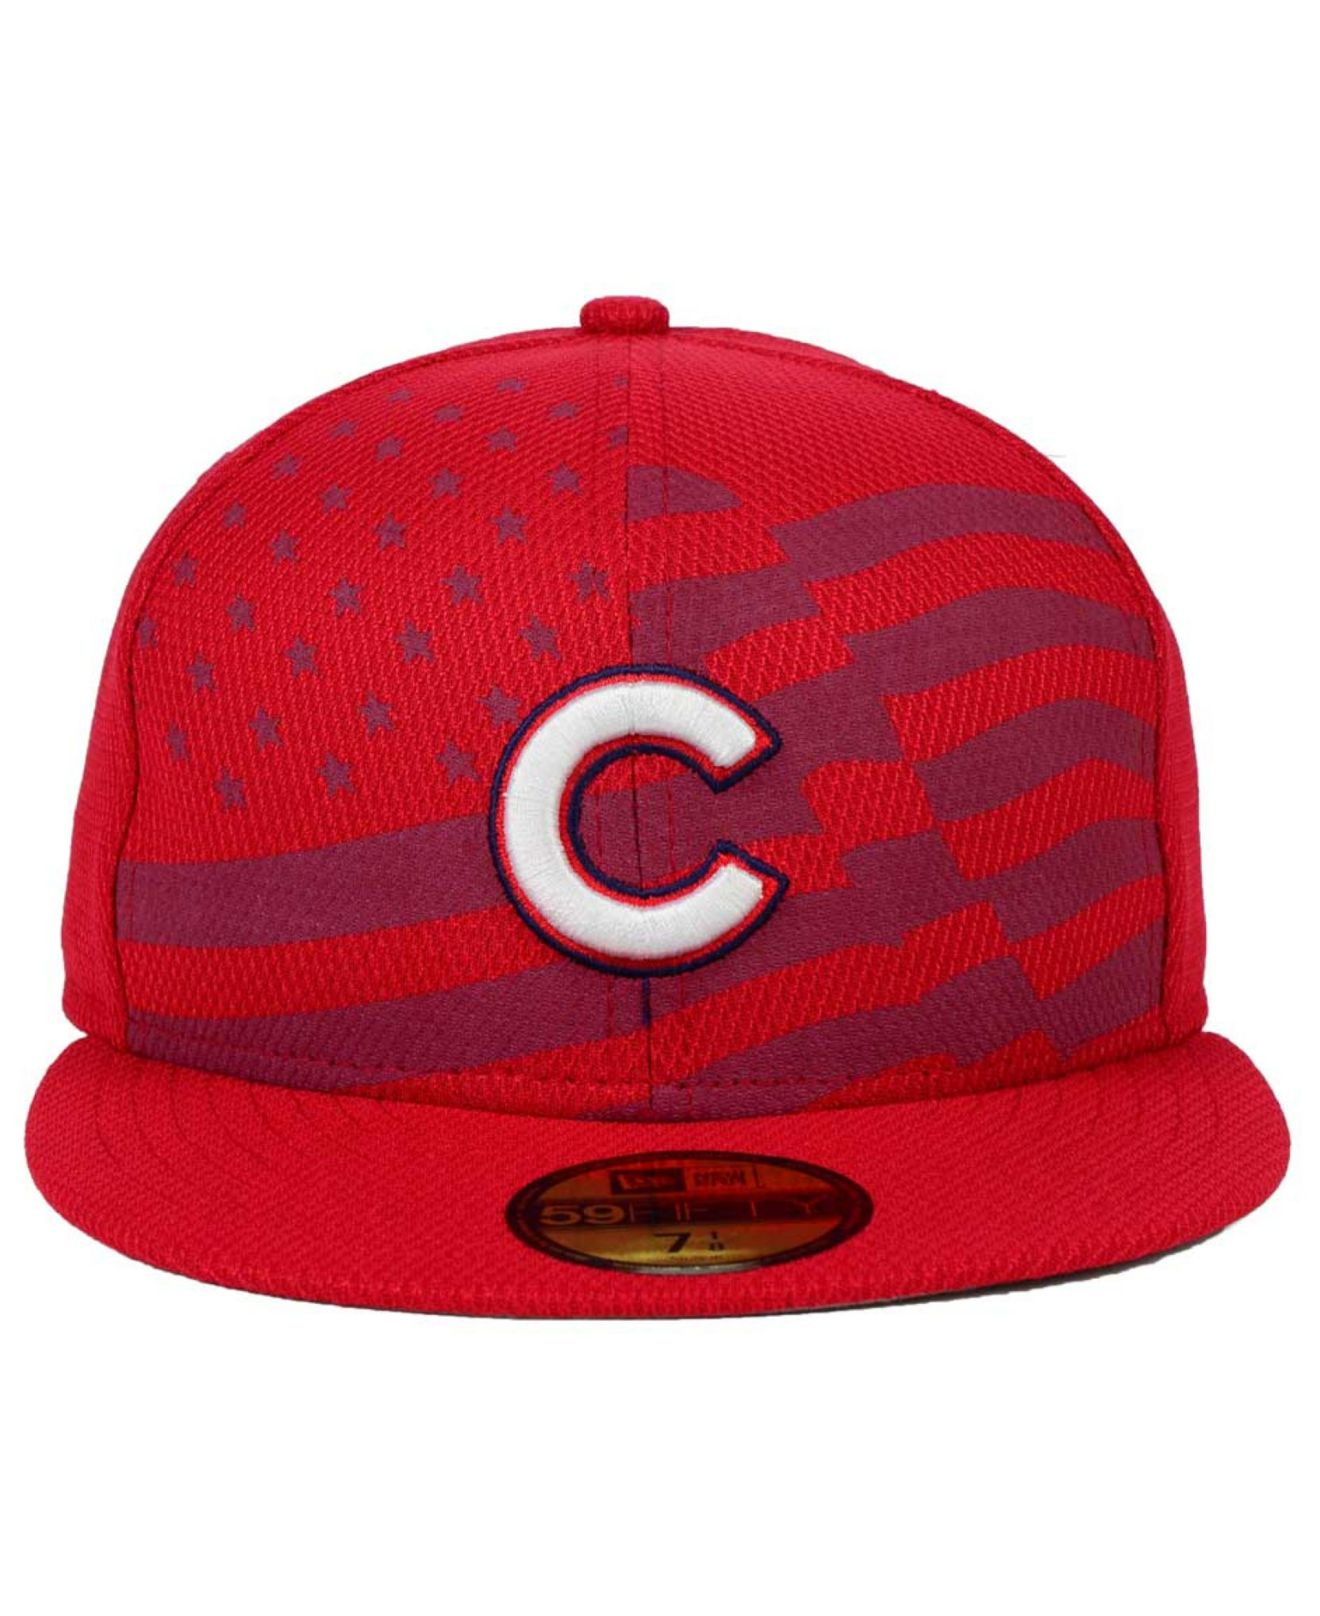 d7a6f8dfa96 Lyst - KTZ Chicago Cubs July 4th Stars   Stripes 59fifty Cap in Red ...